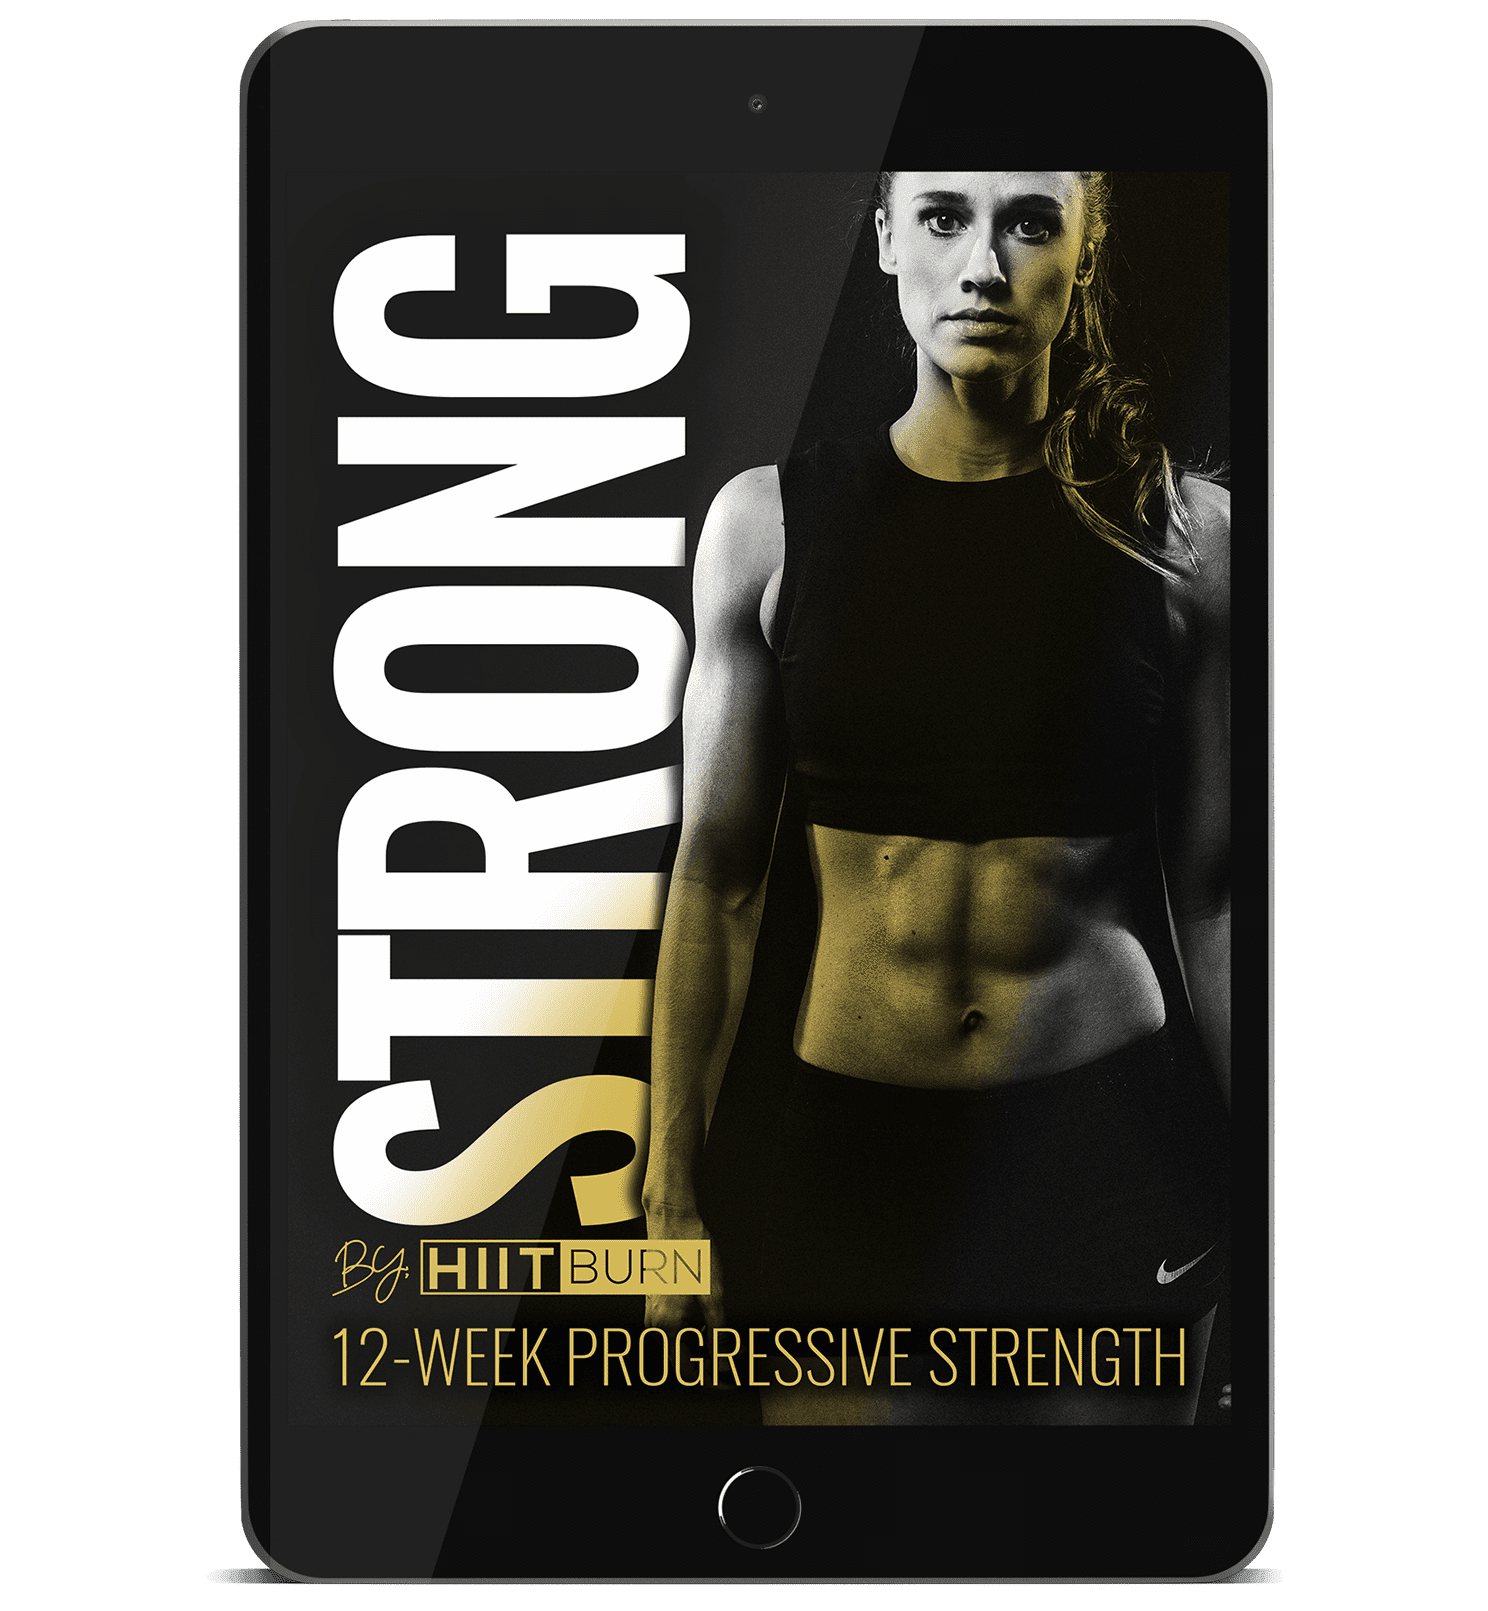 STRONG by HIITBURN 12-Week Progressive Strength + Nutrition Coaching